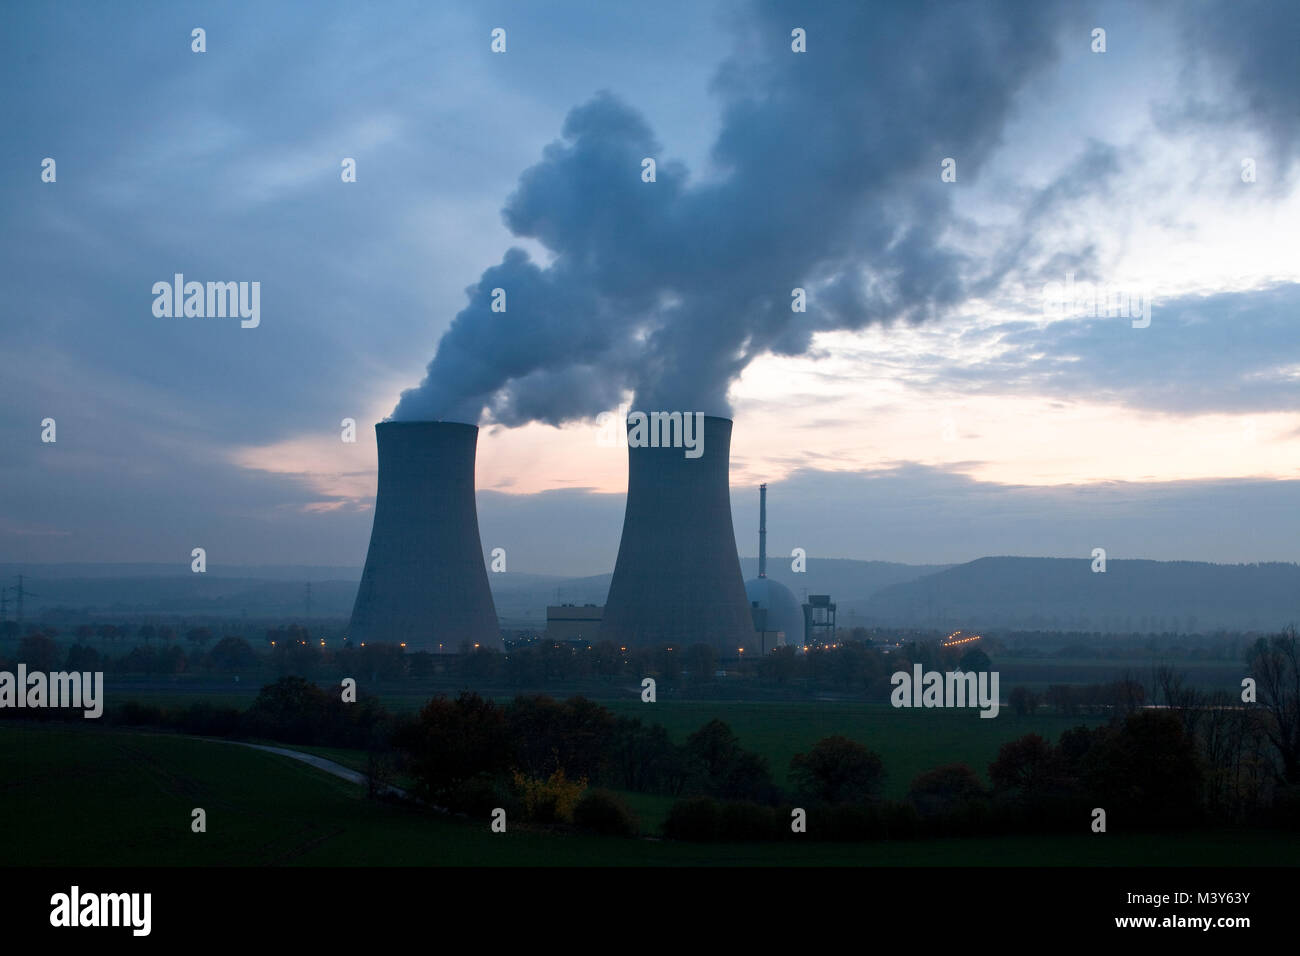 Nuclear power plant Grohnde in Germany at a cloudy dawn - Stock Image